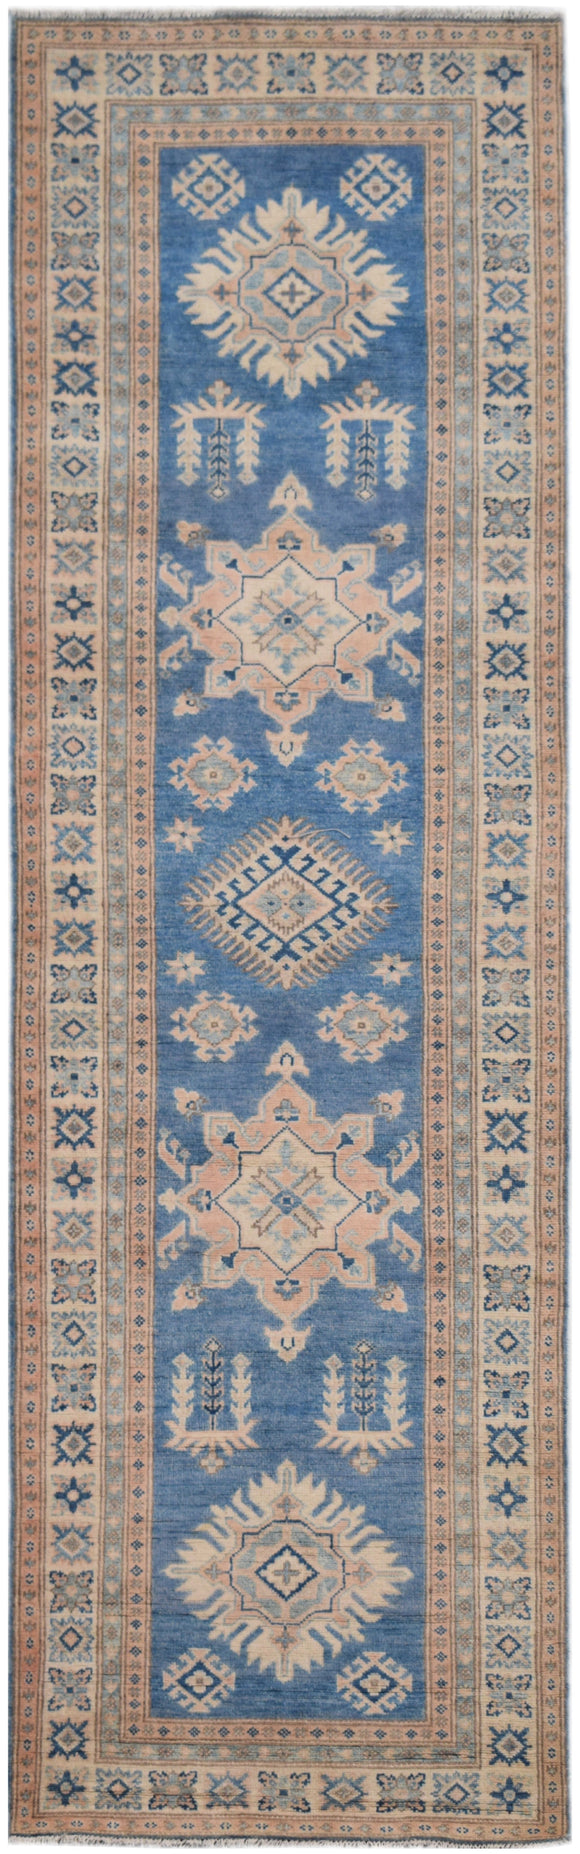 Handmade Sultan Collection Hallway Runner | 289 x 76 cm